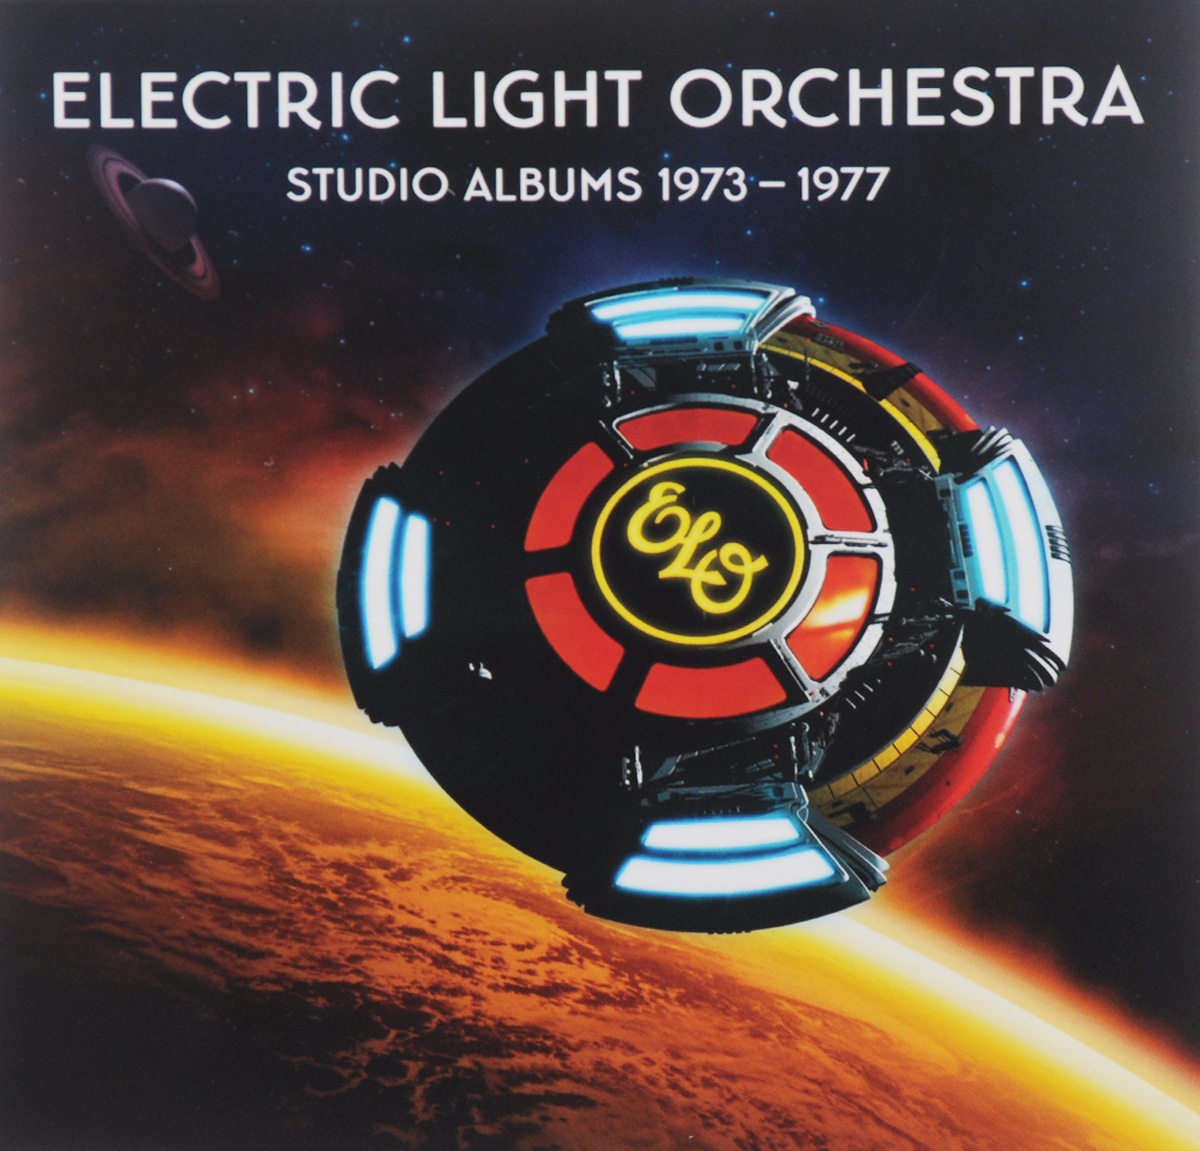 Electric Light Orchestra Electric Light Orchestra. Studio Albums 1973-1977 (5 CD) roxy music roxy music the studio albums limited edition 8 lp